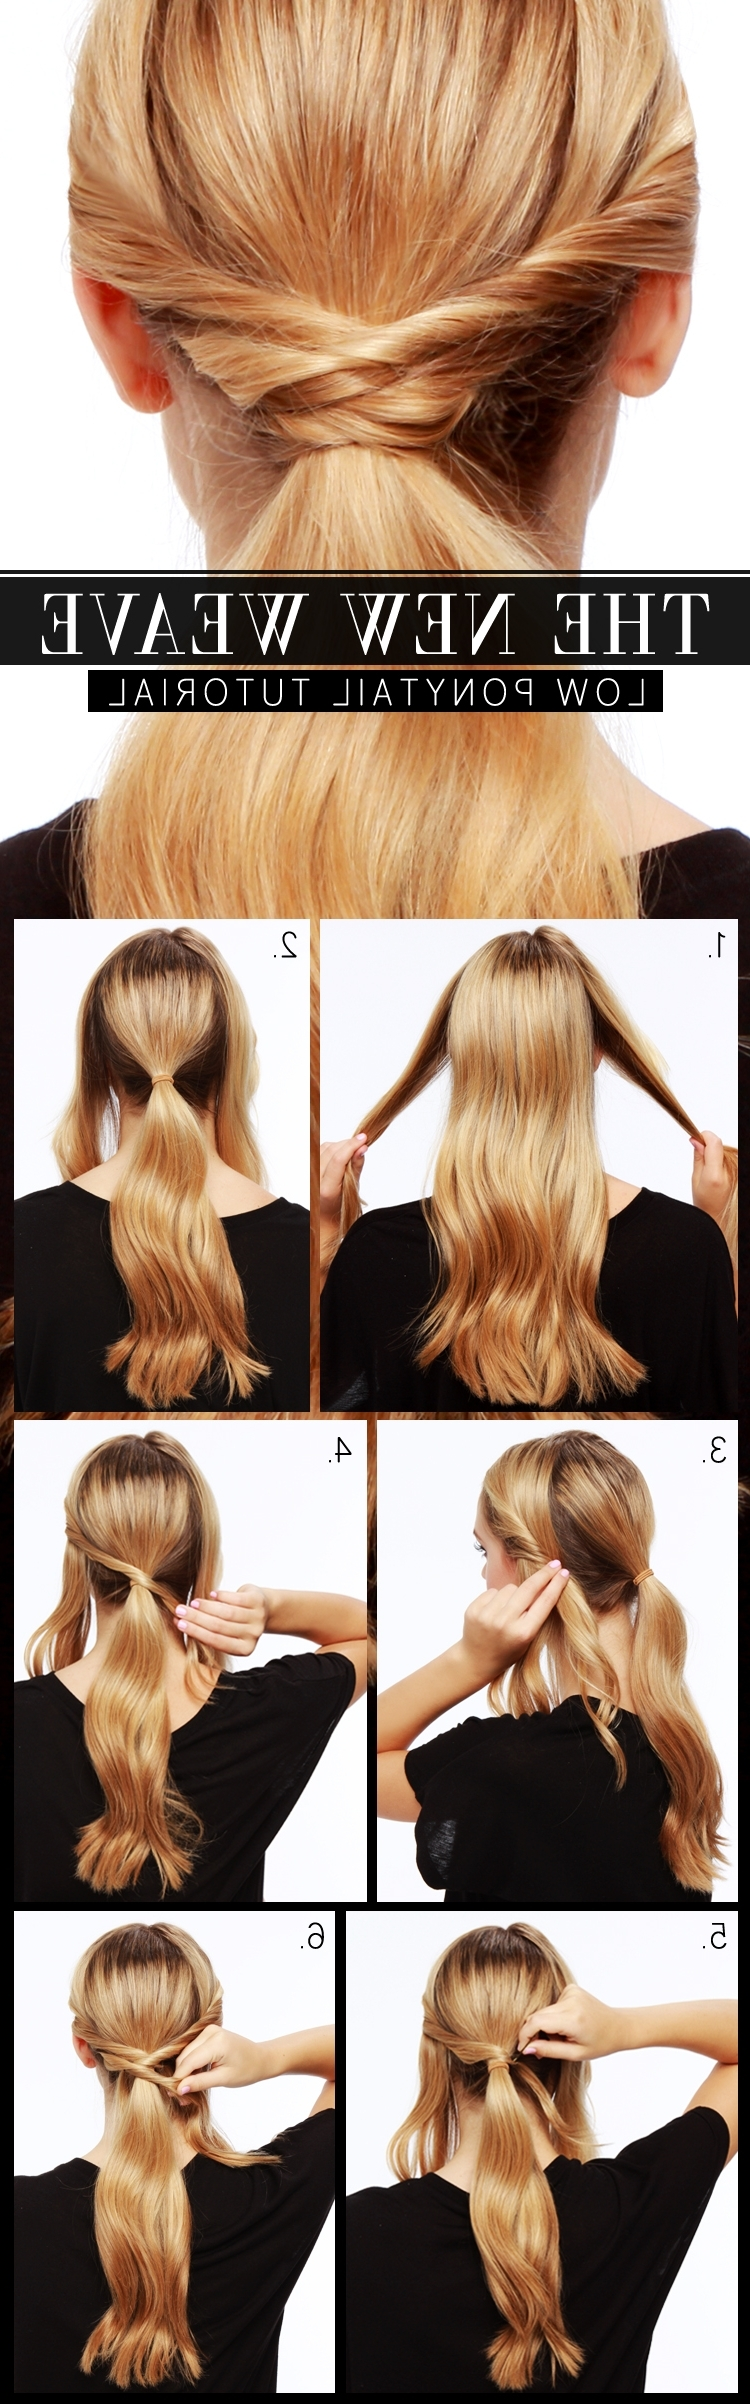 Classy To Cute: 25+ Easy Hairstyles For Long Hair For 2017 Everyday Hairstyles For Medium Wavy Hair